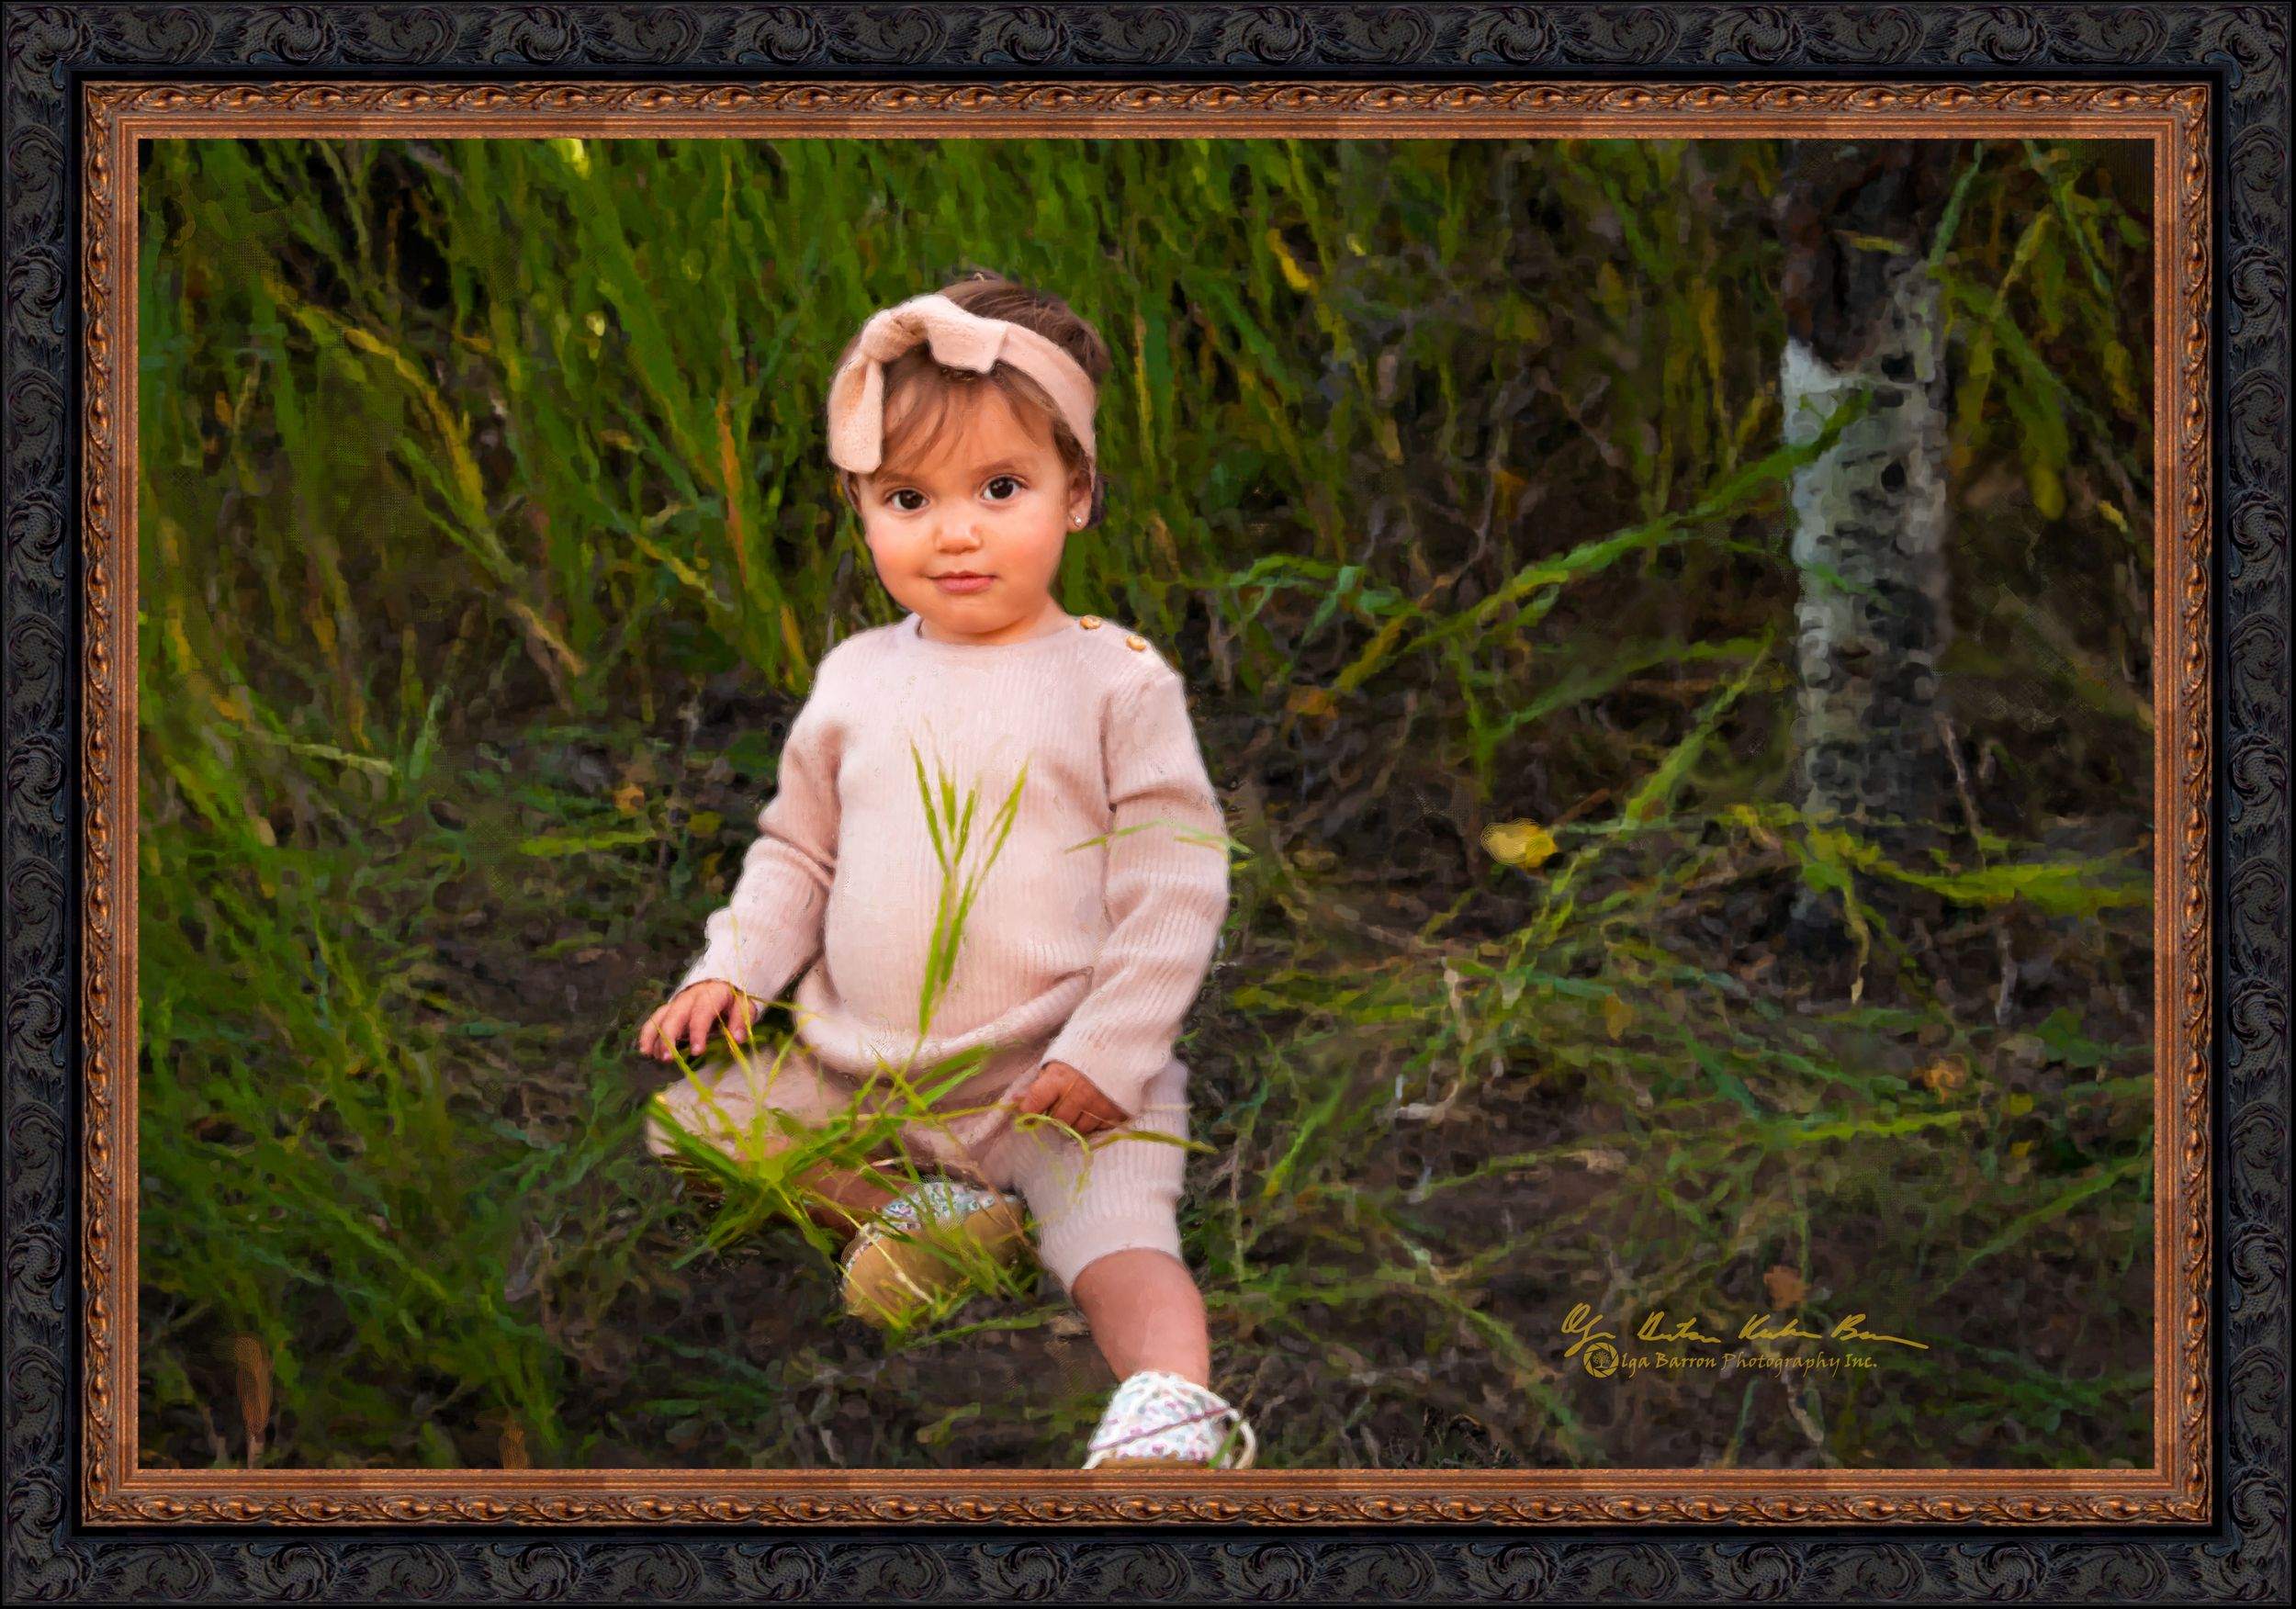 Framed painterly portrait of a little girl in pink in the grass in the fall